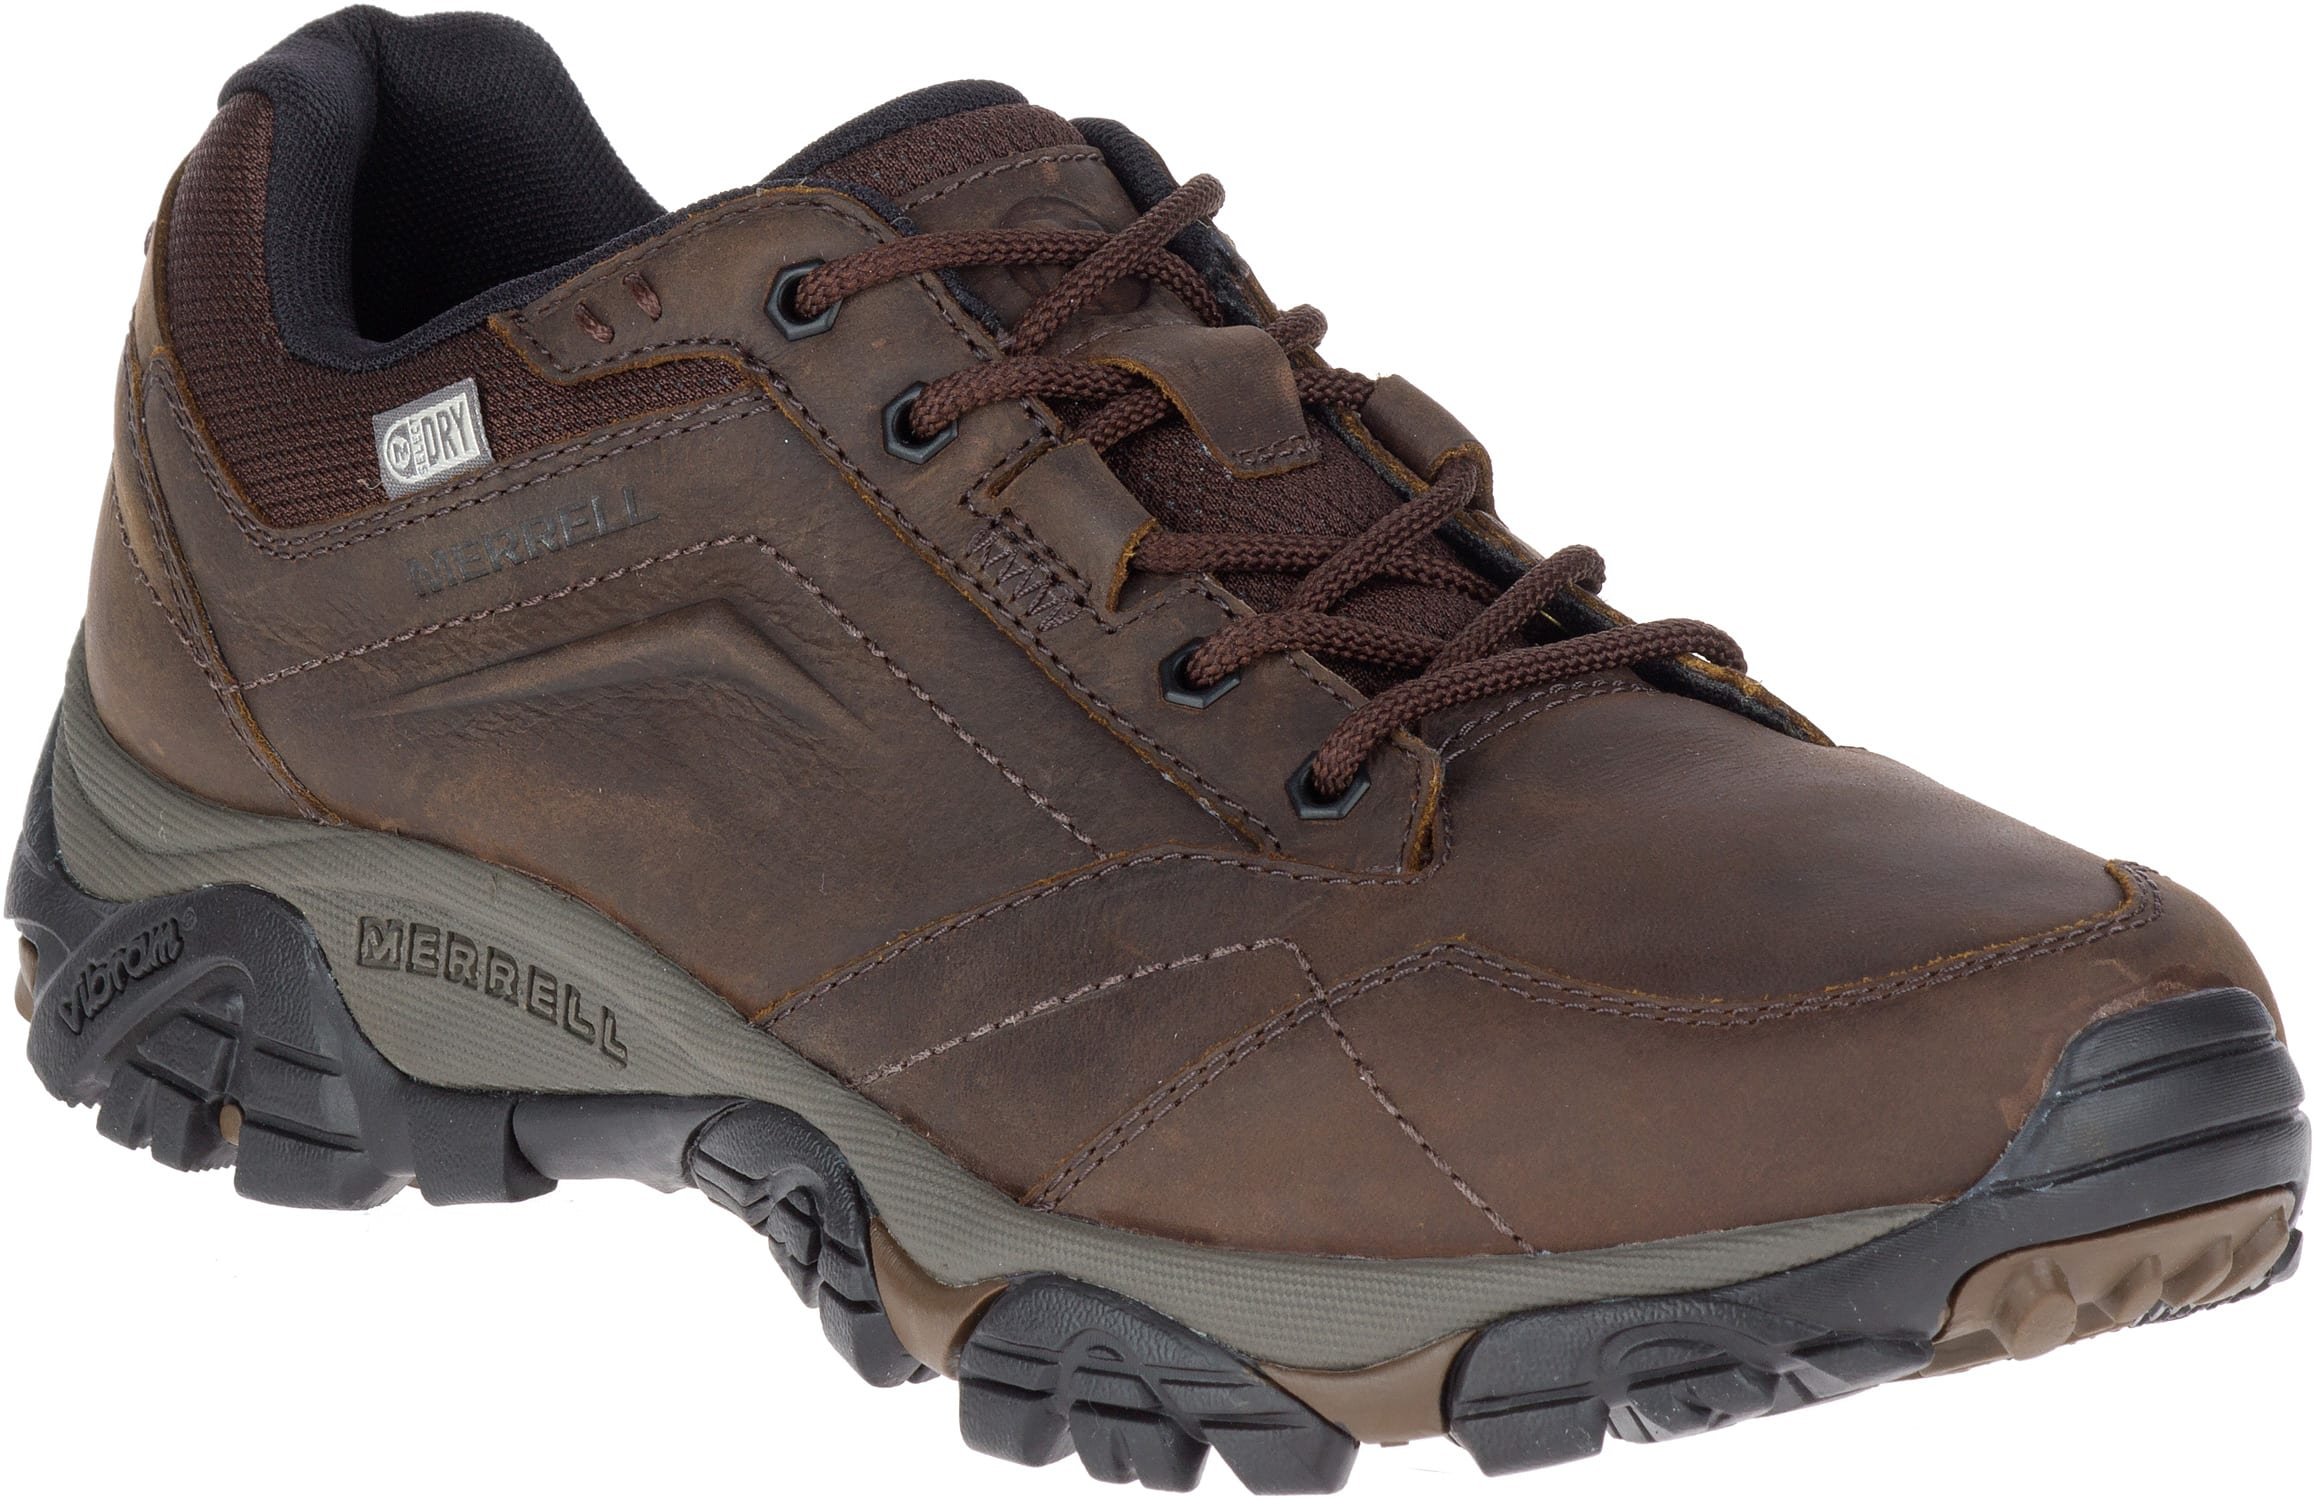 Merrell Womens Shoes Reviews